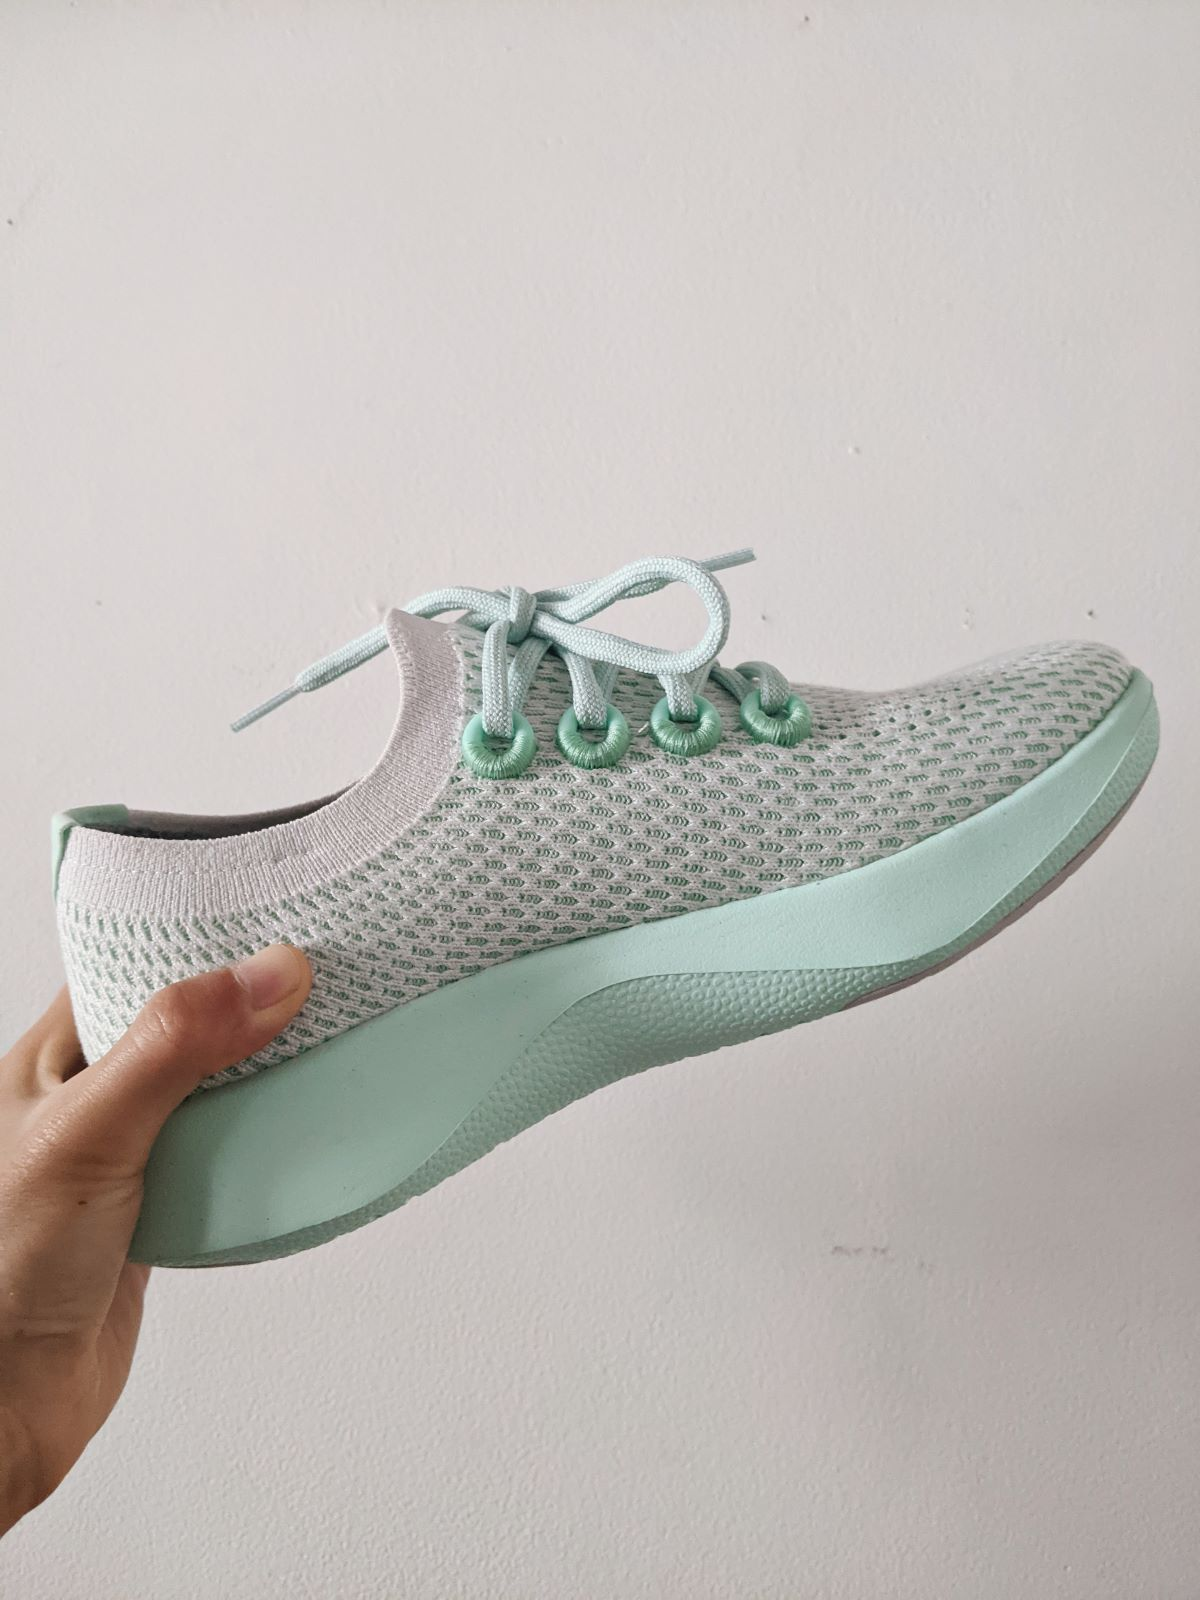 Allbirds Tree Dashers running shoes in mint/Cyclone